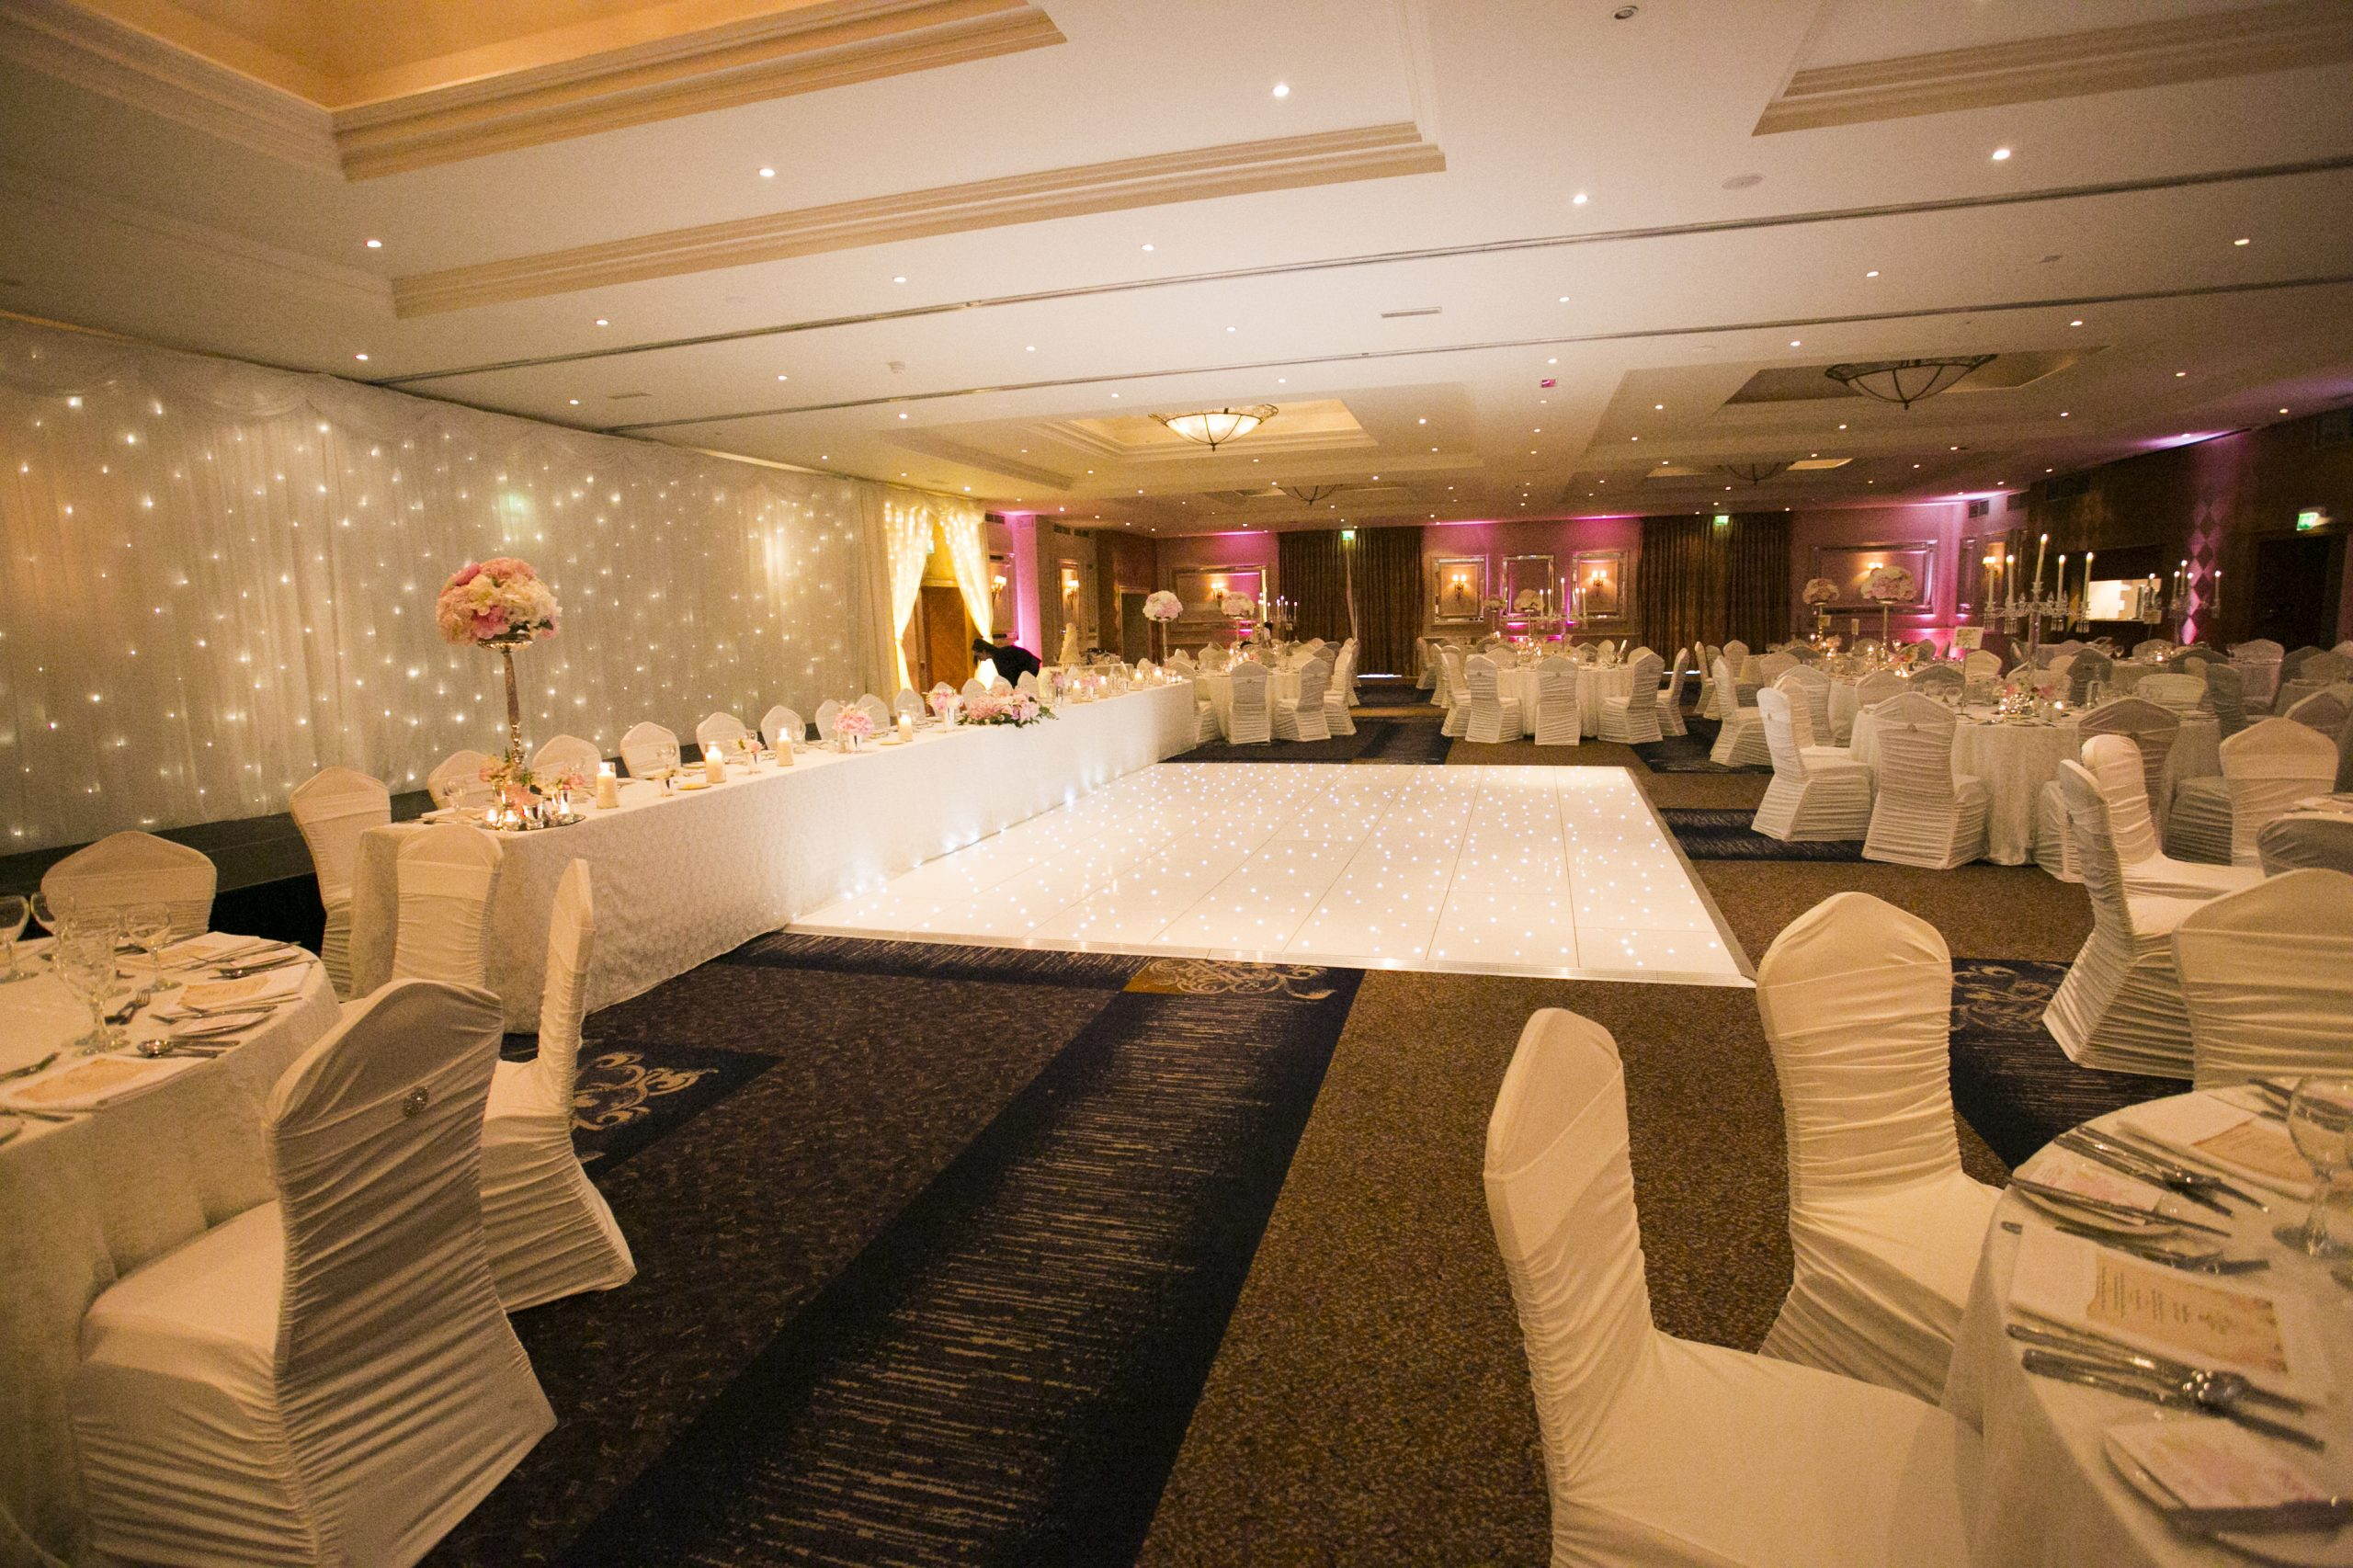 Mount Wolseley full room decor - fairylight backdrop, uplighting, door drapes, spandex chair covers with diamante brooches and centerpieces